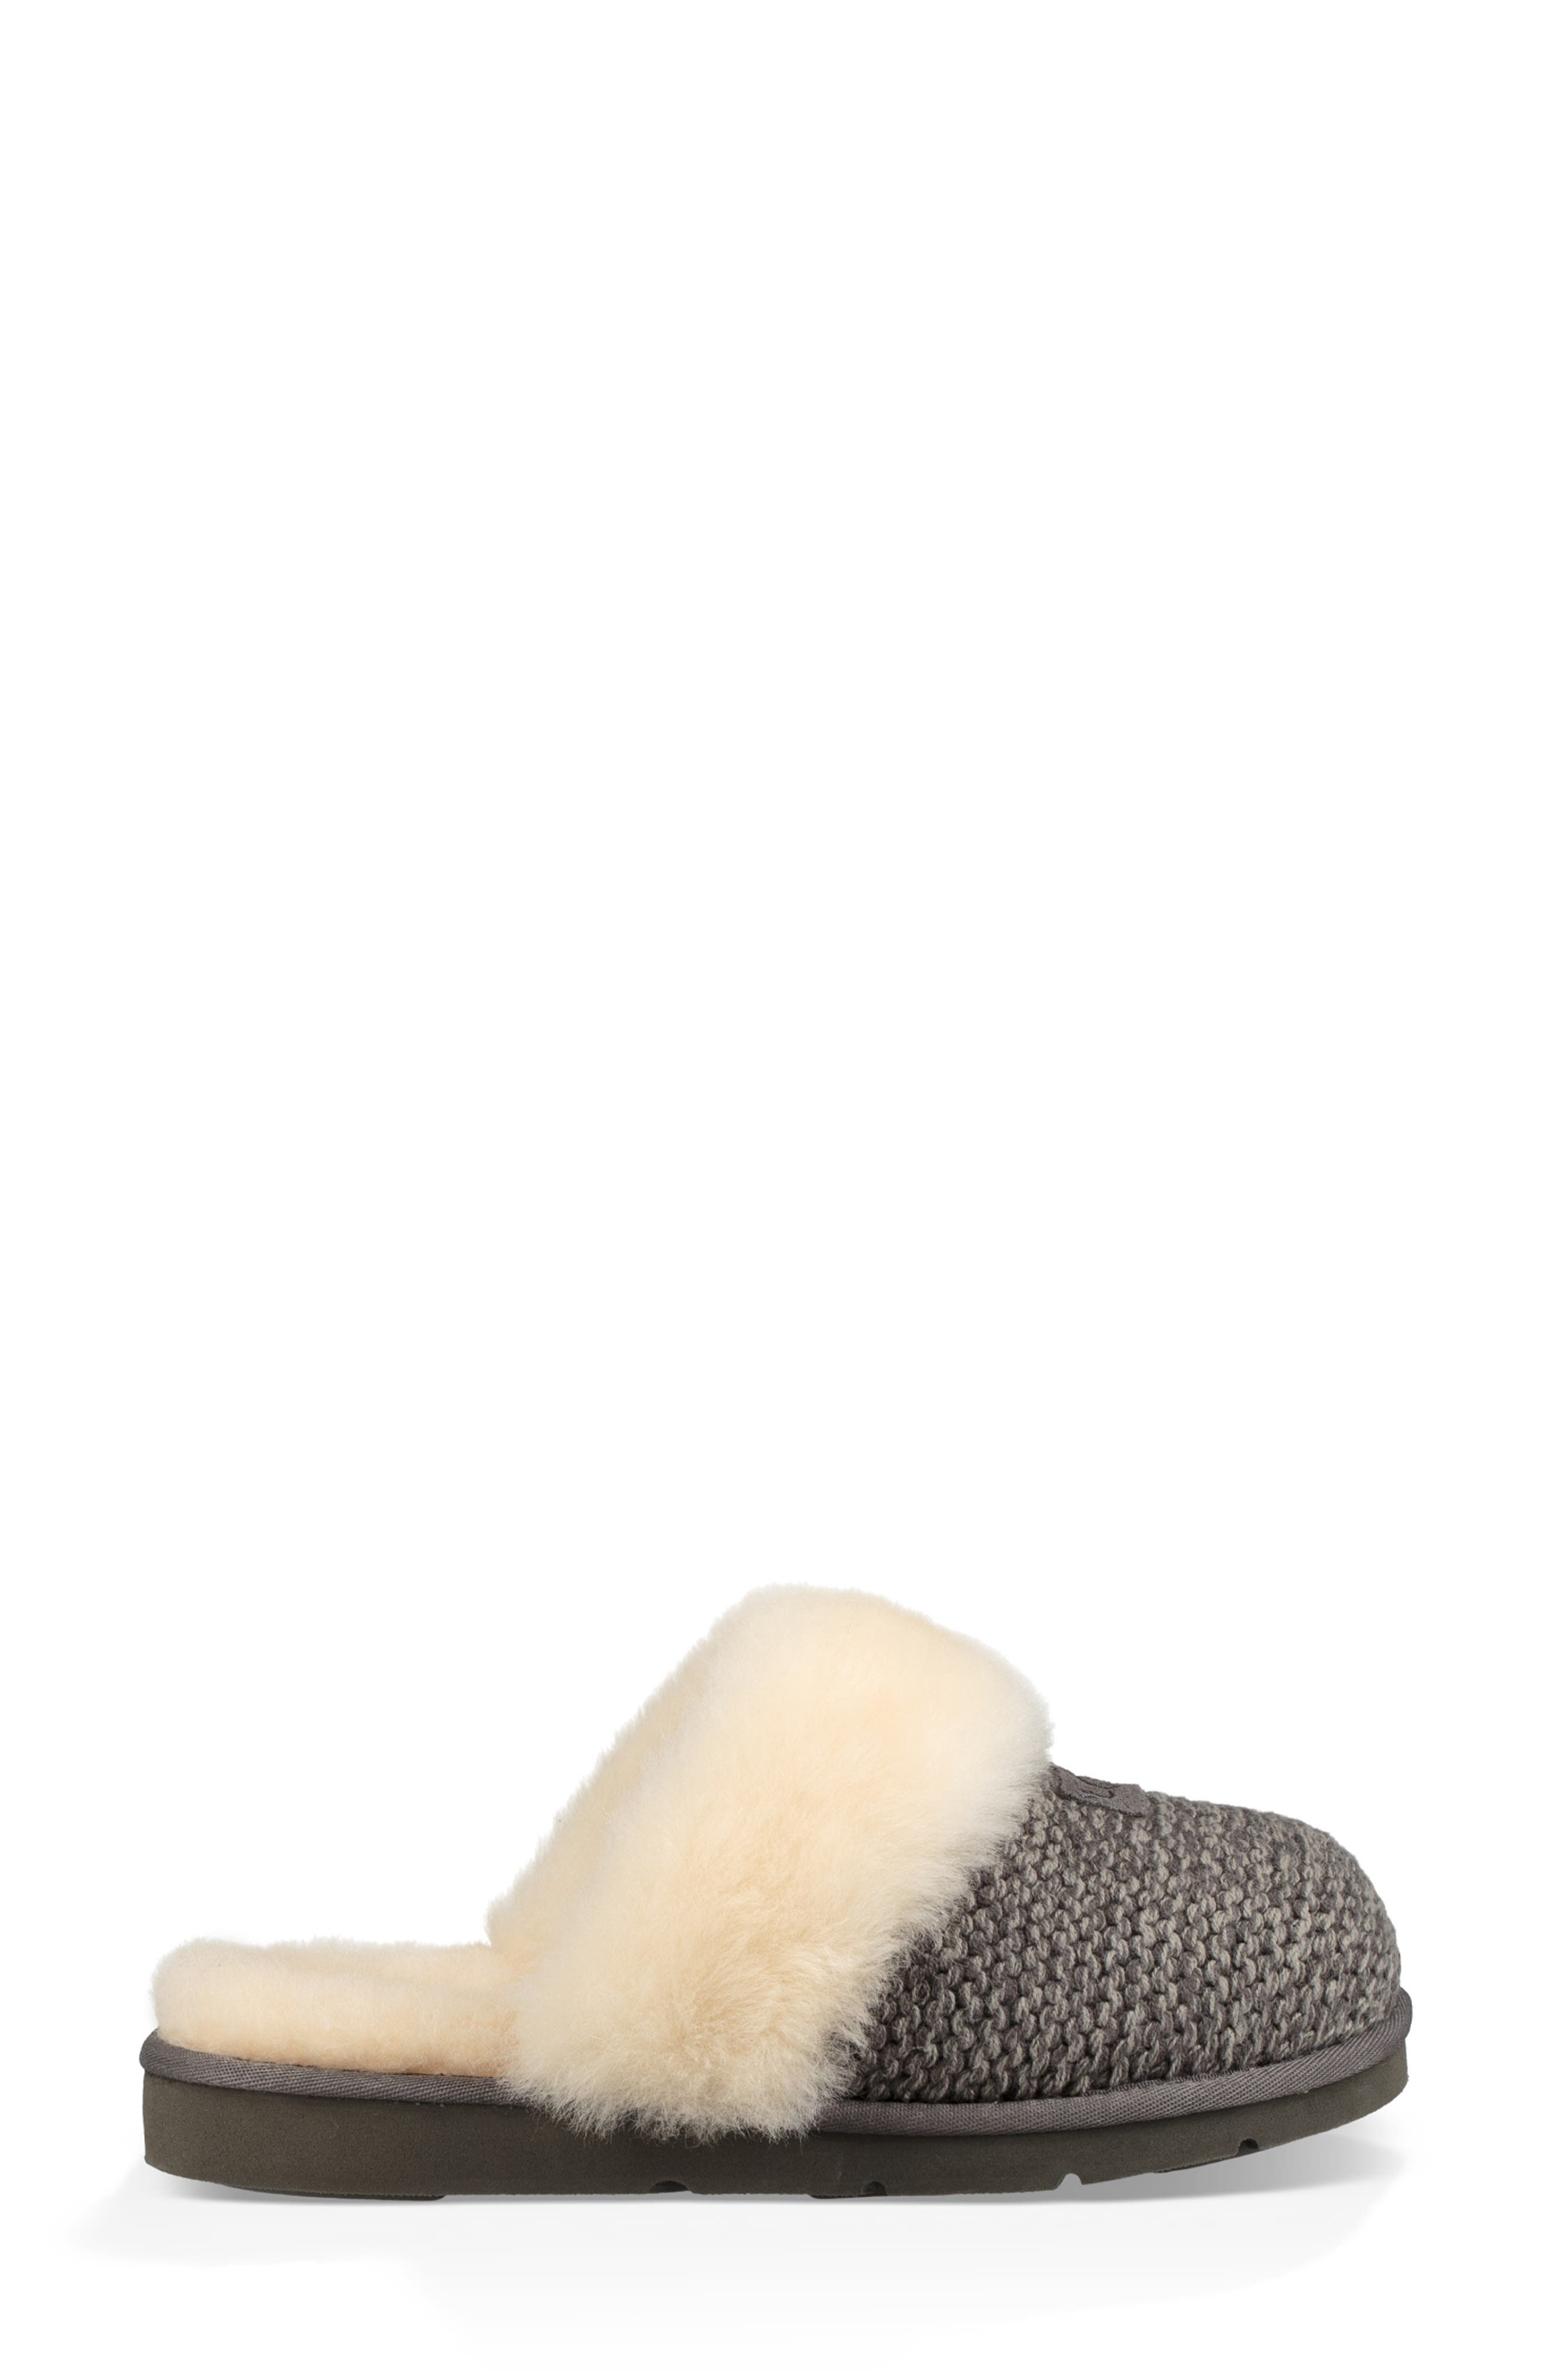 Cozy Knit Genuine Shearling Slipper,                             Alternate thumbnail 3, color,                             CHARCOAL